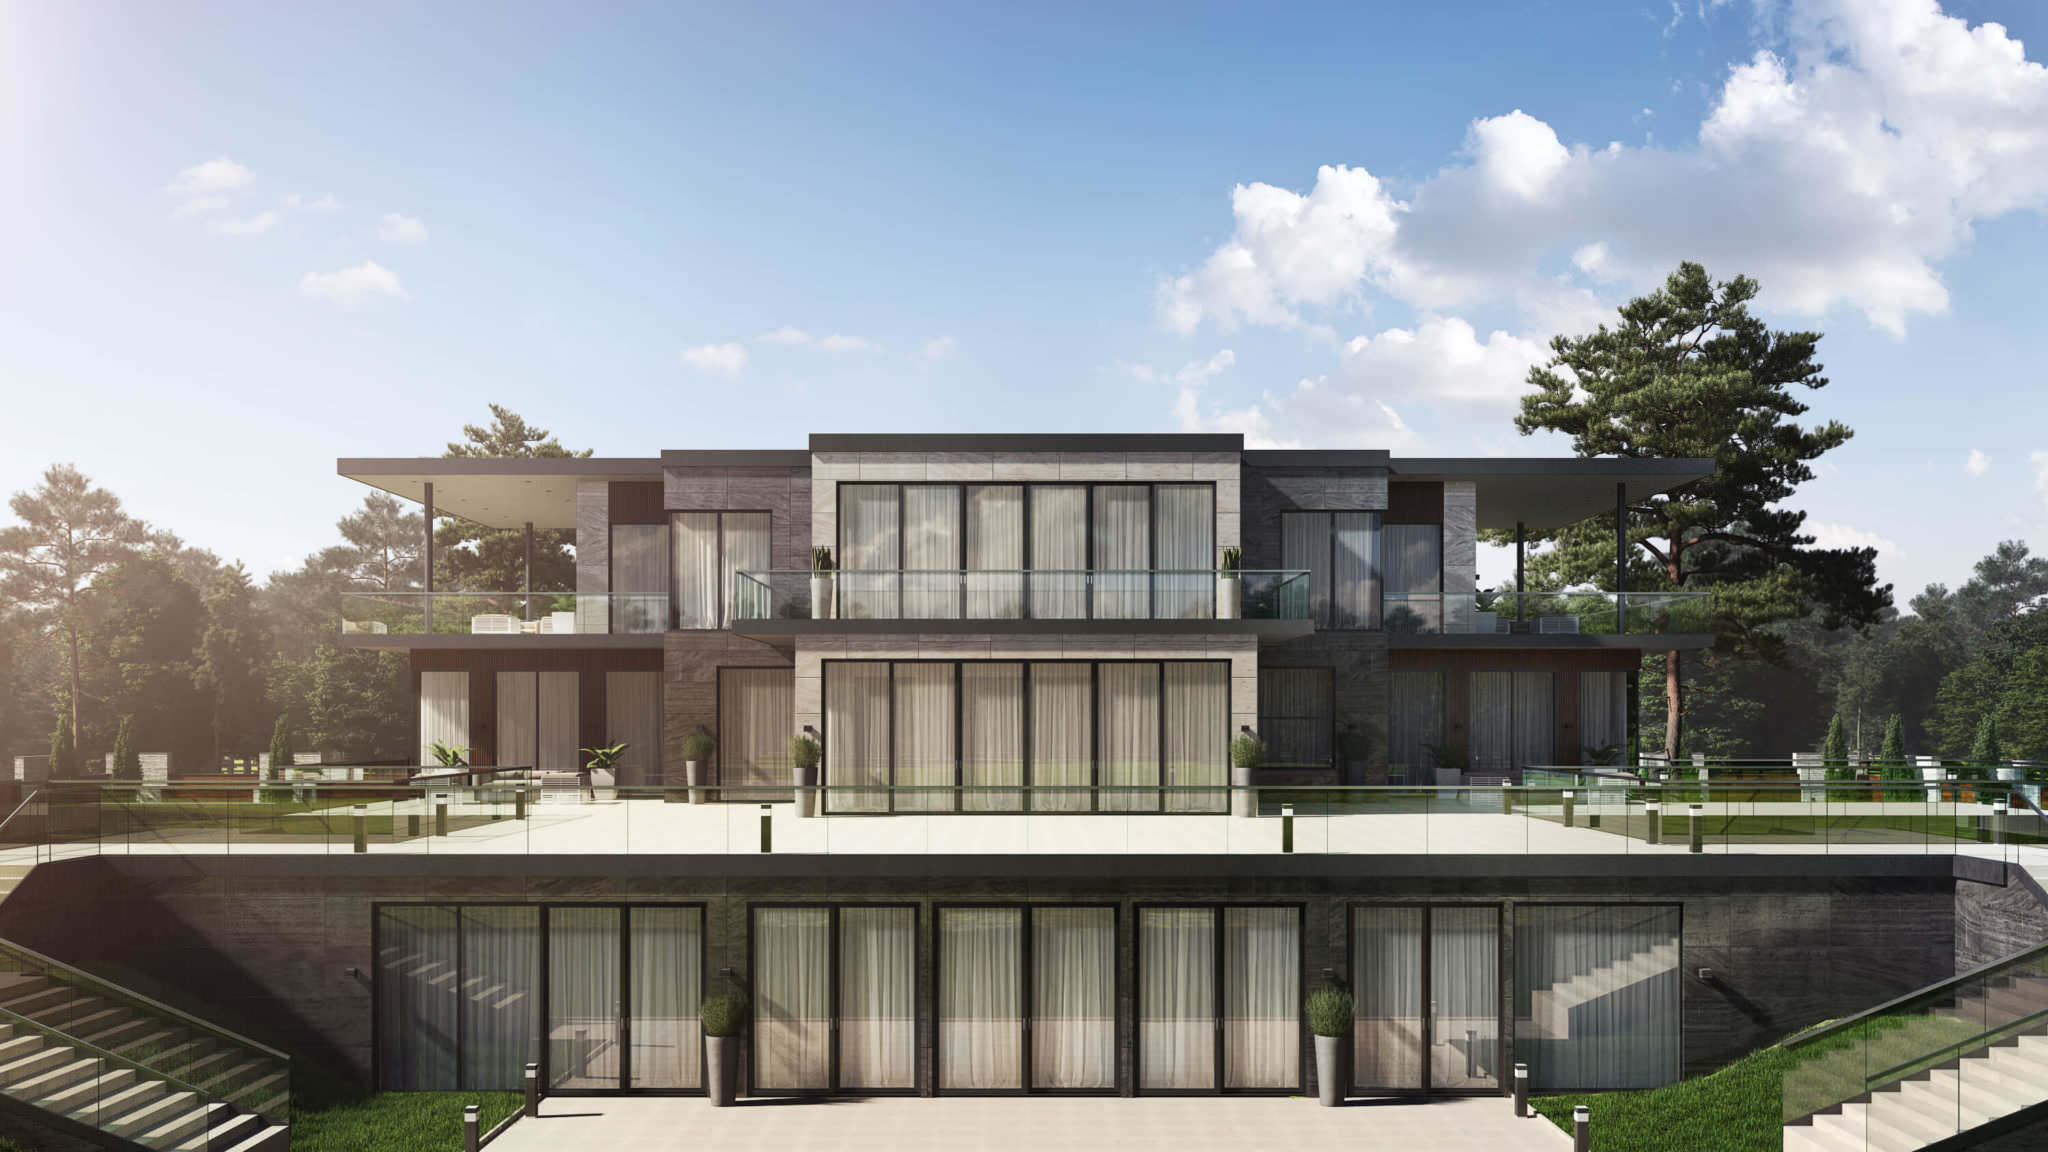 Stunning Exterior Rendering For A House Design Project: Main Entrance